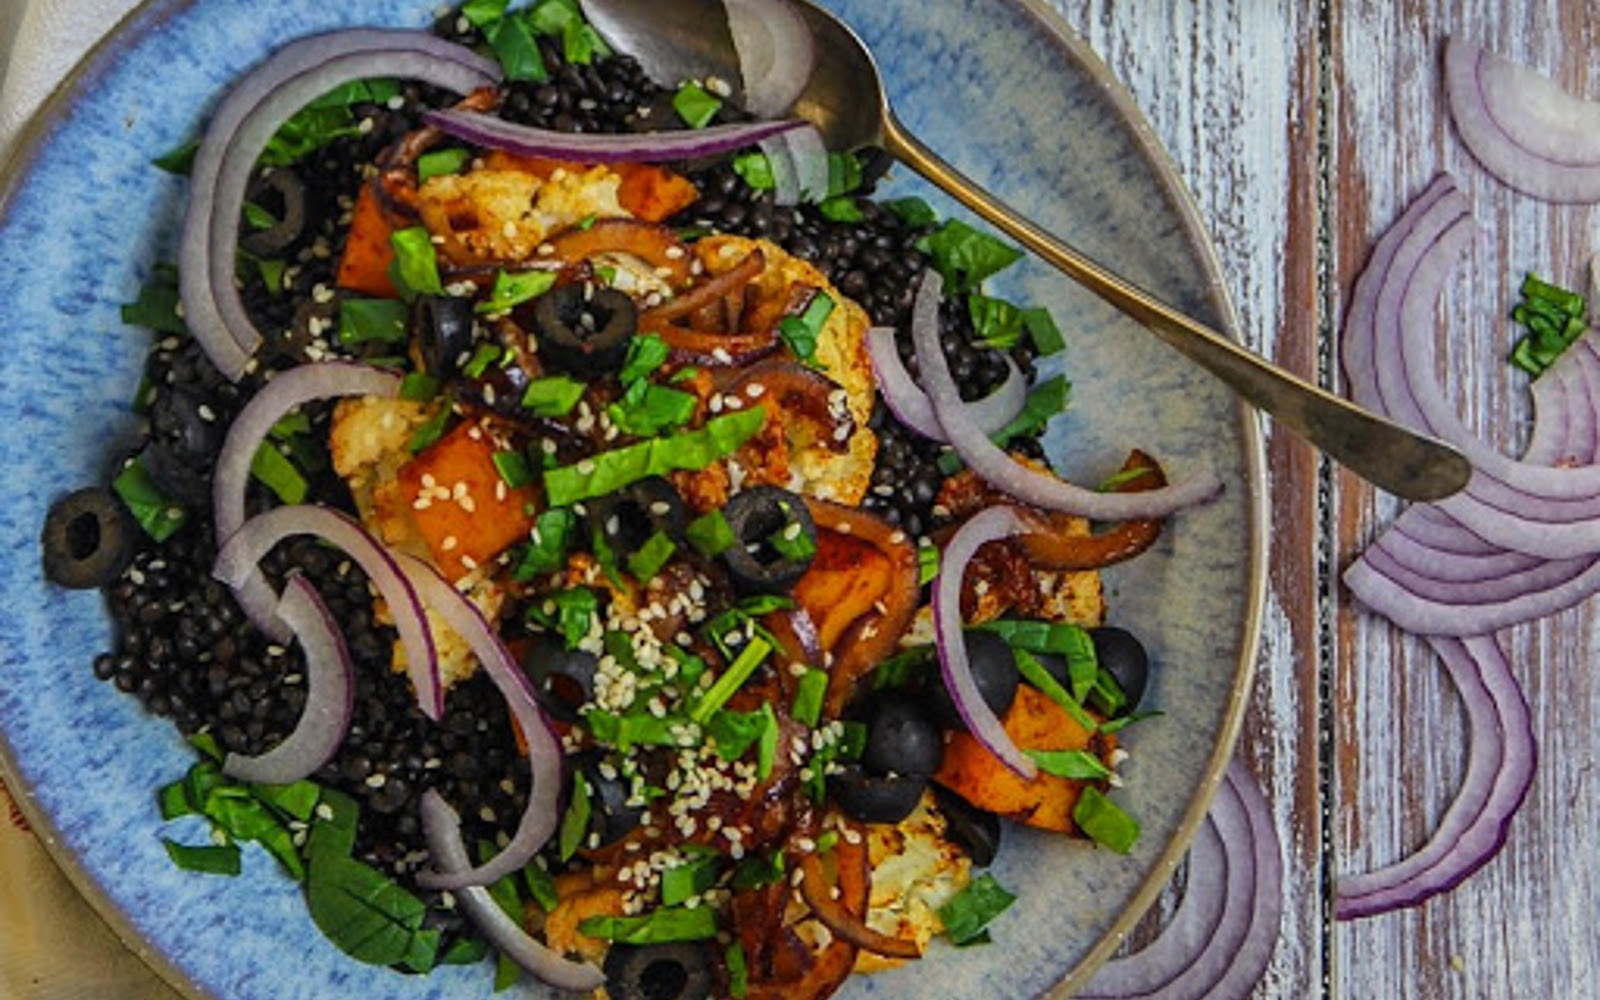 Sultana and Beluga Lentil Salad with Cumin Caramelized Vegetables